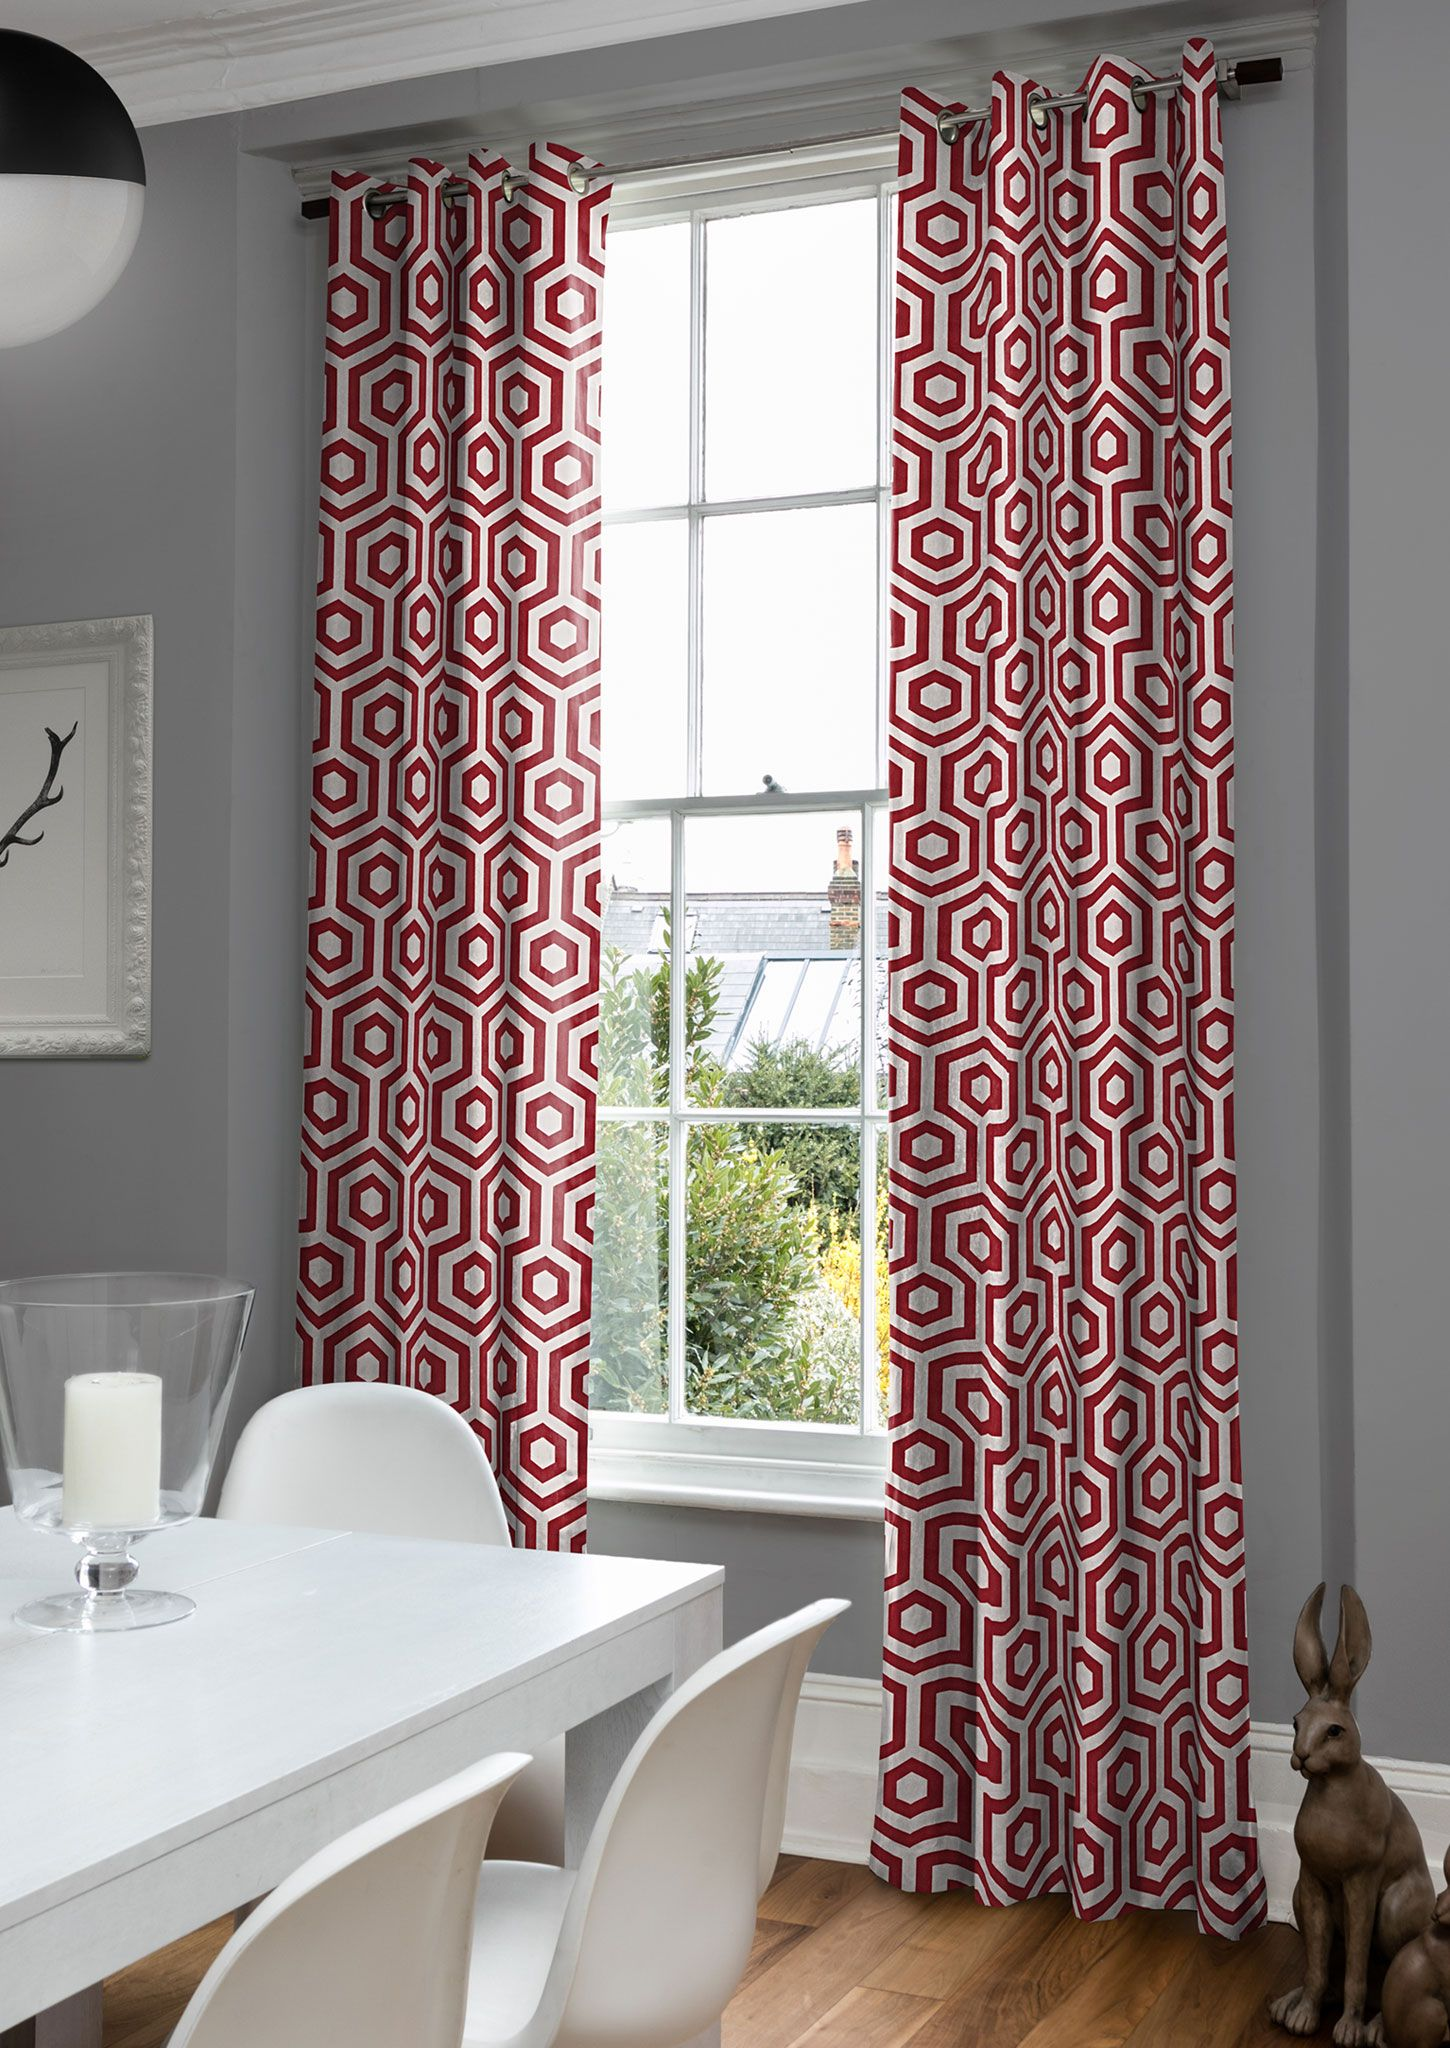 Geometric Patterned Curtains Moderne Pendant Geometric Curtains In Red And White With A Eye